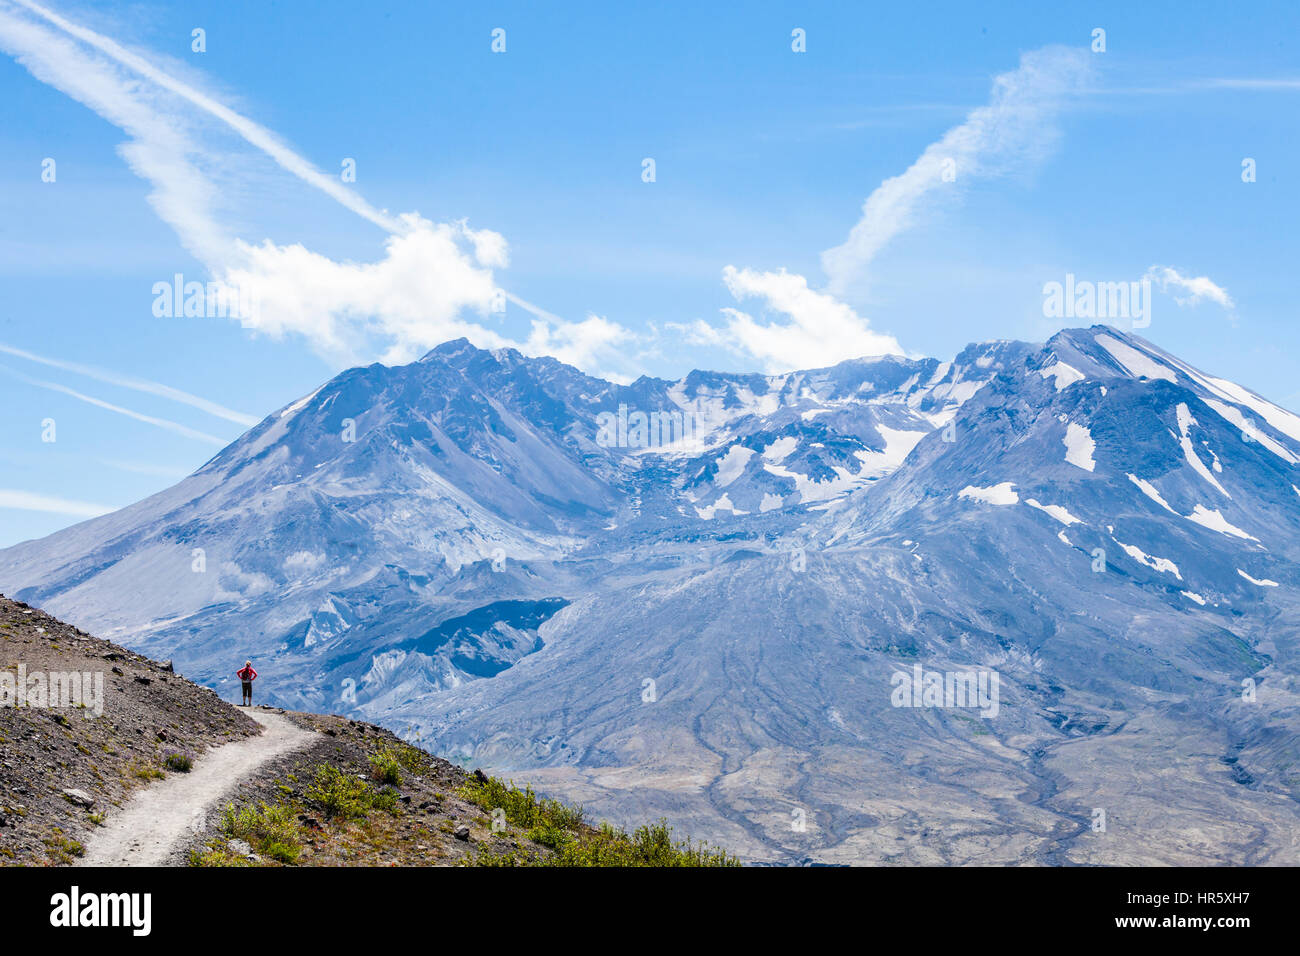 A woman hiker on the Johnston Ridge Trail, Mount St. Helens National Volcanic Monument, Washington, USA. - Stock Image